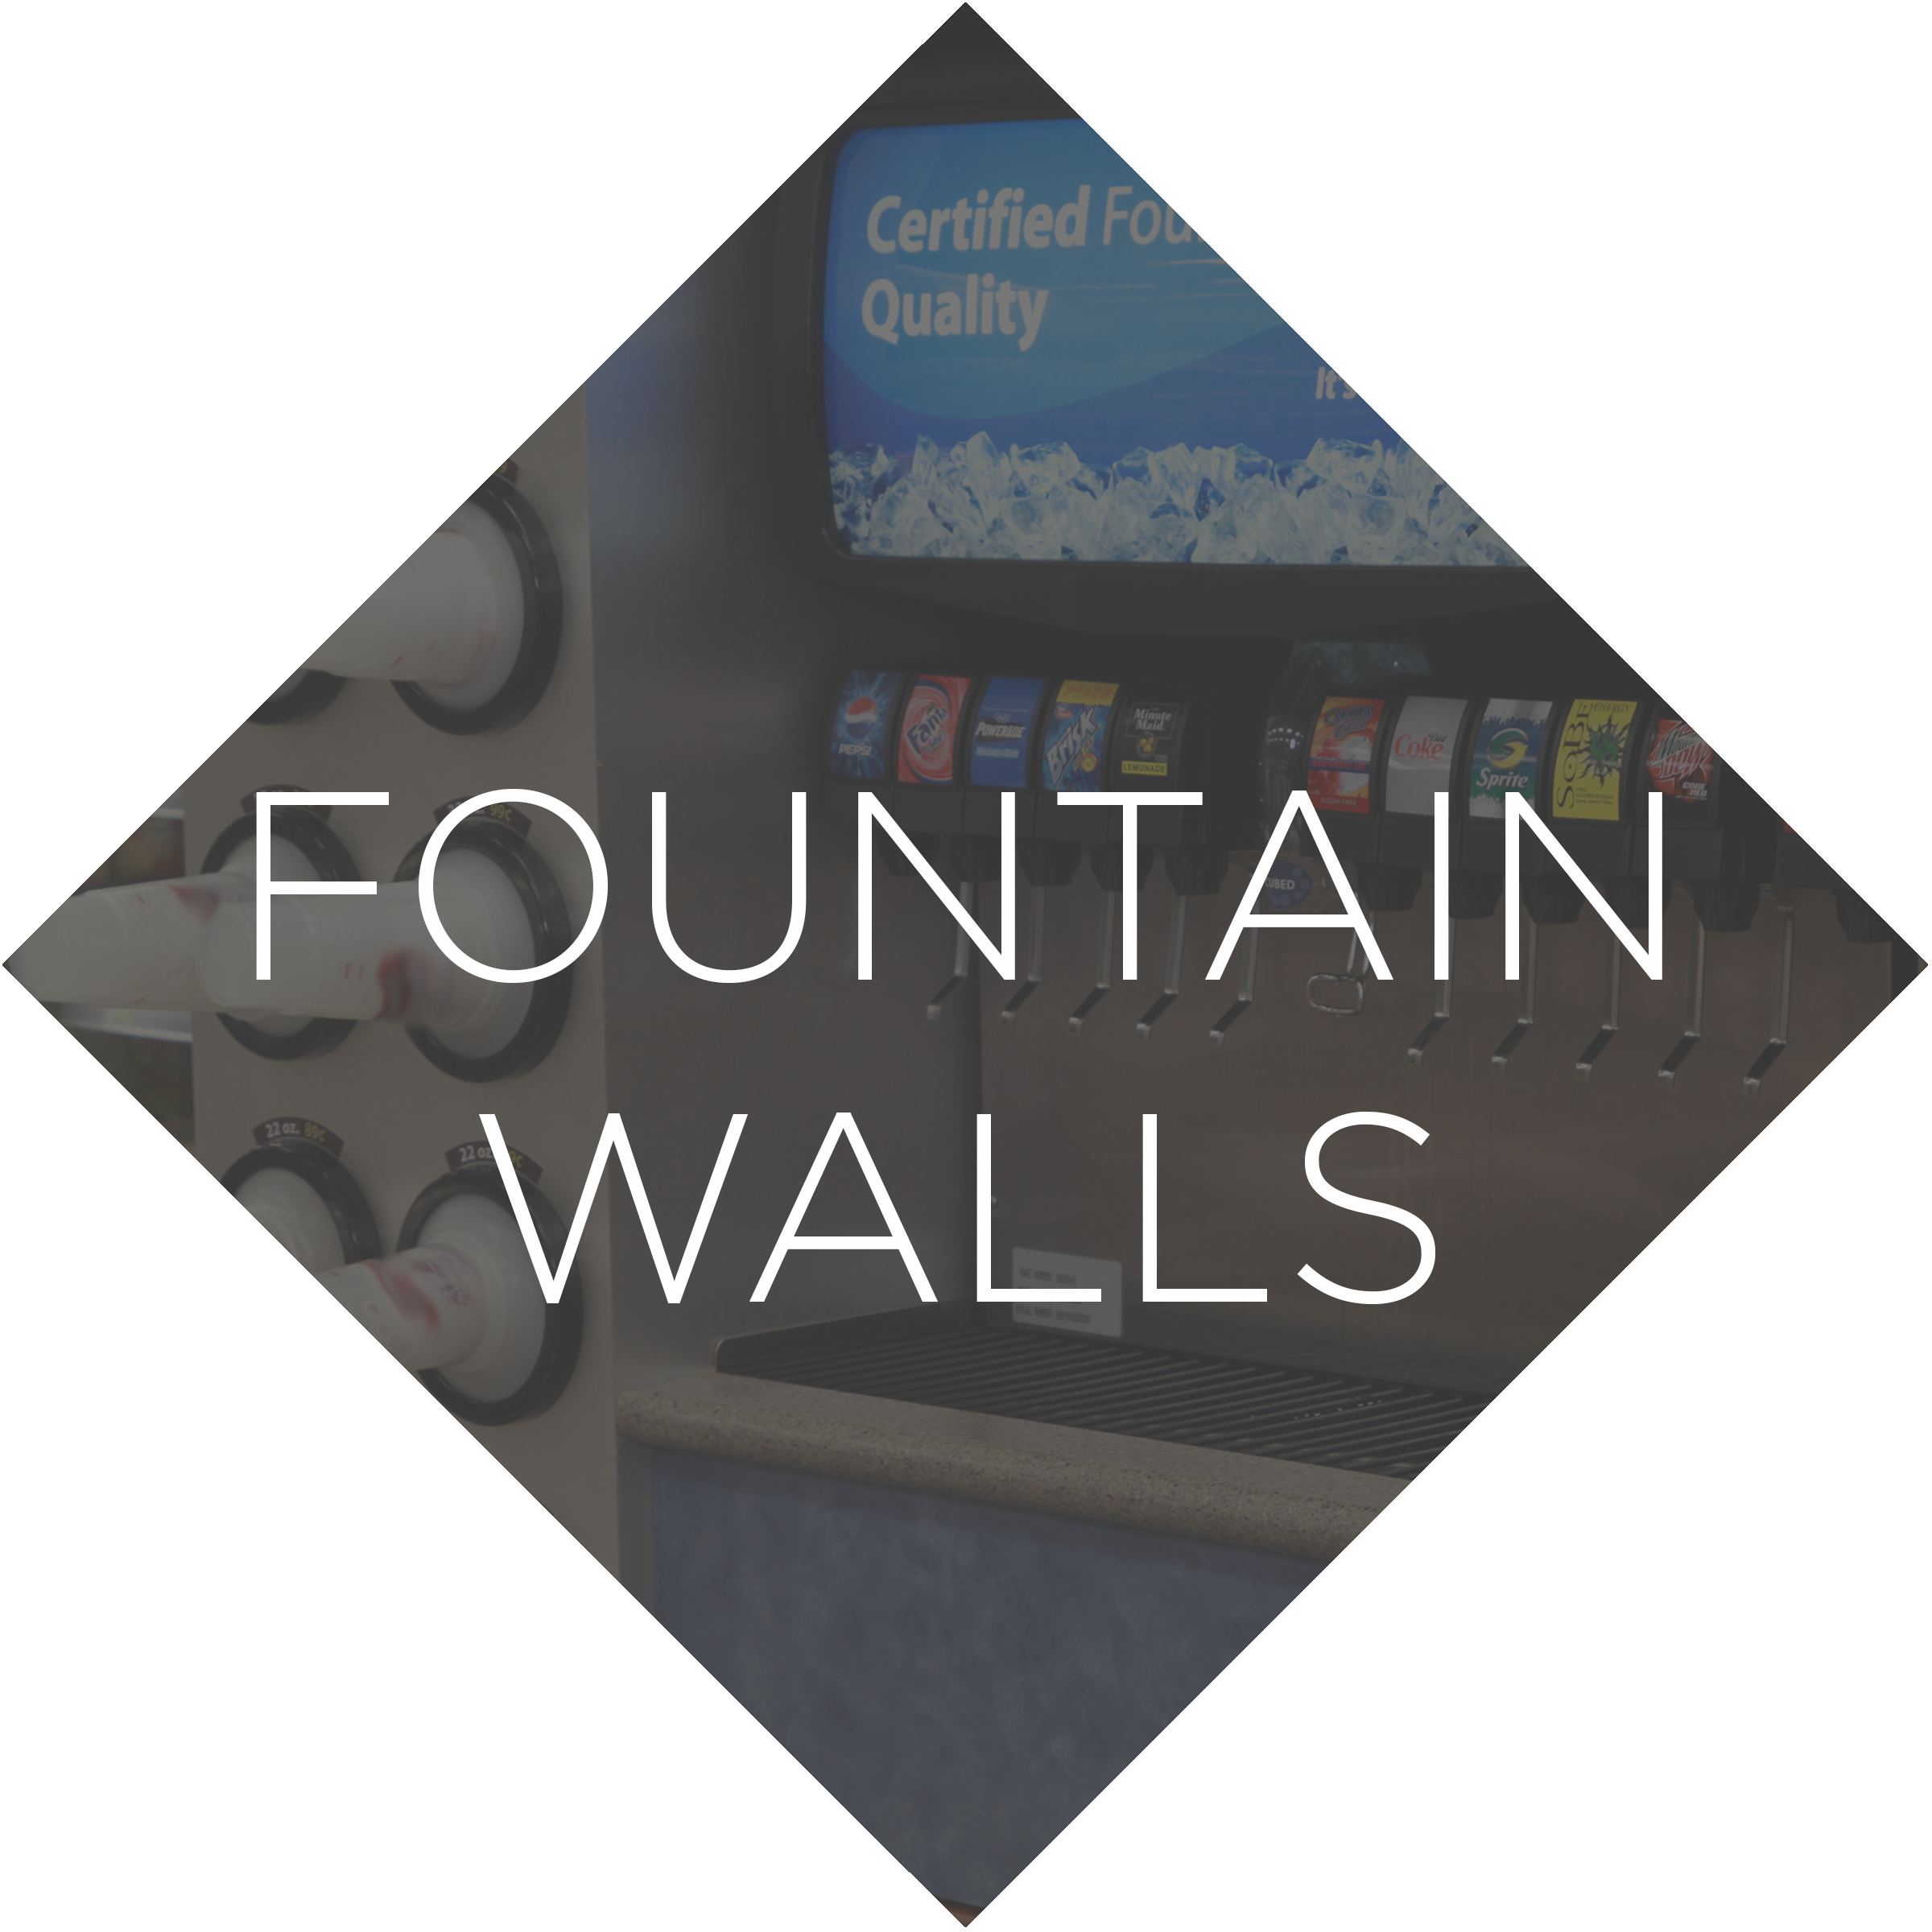 Fountain Walls.png